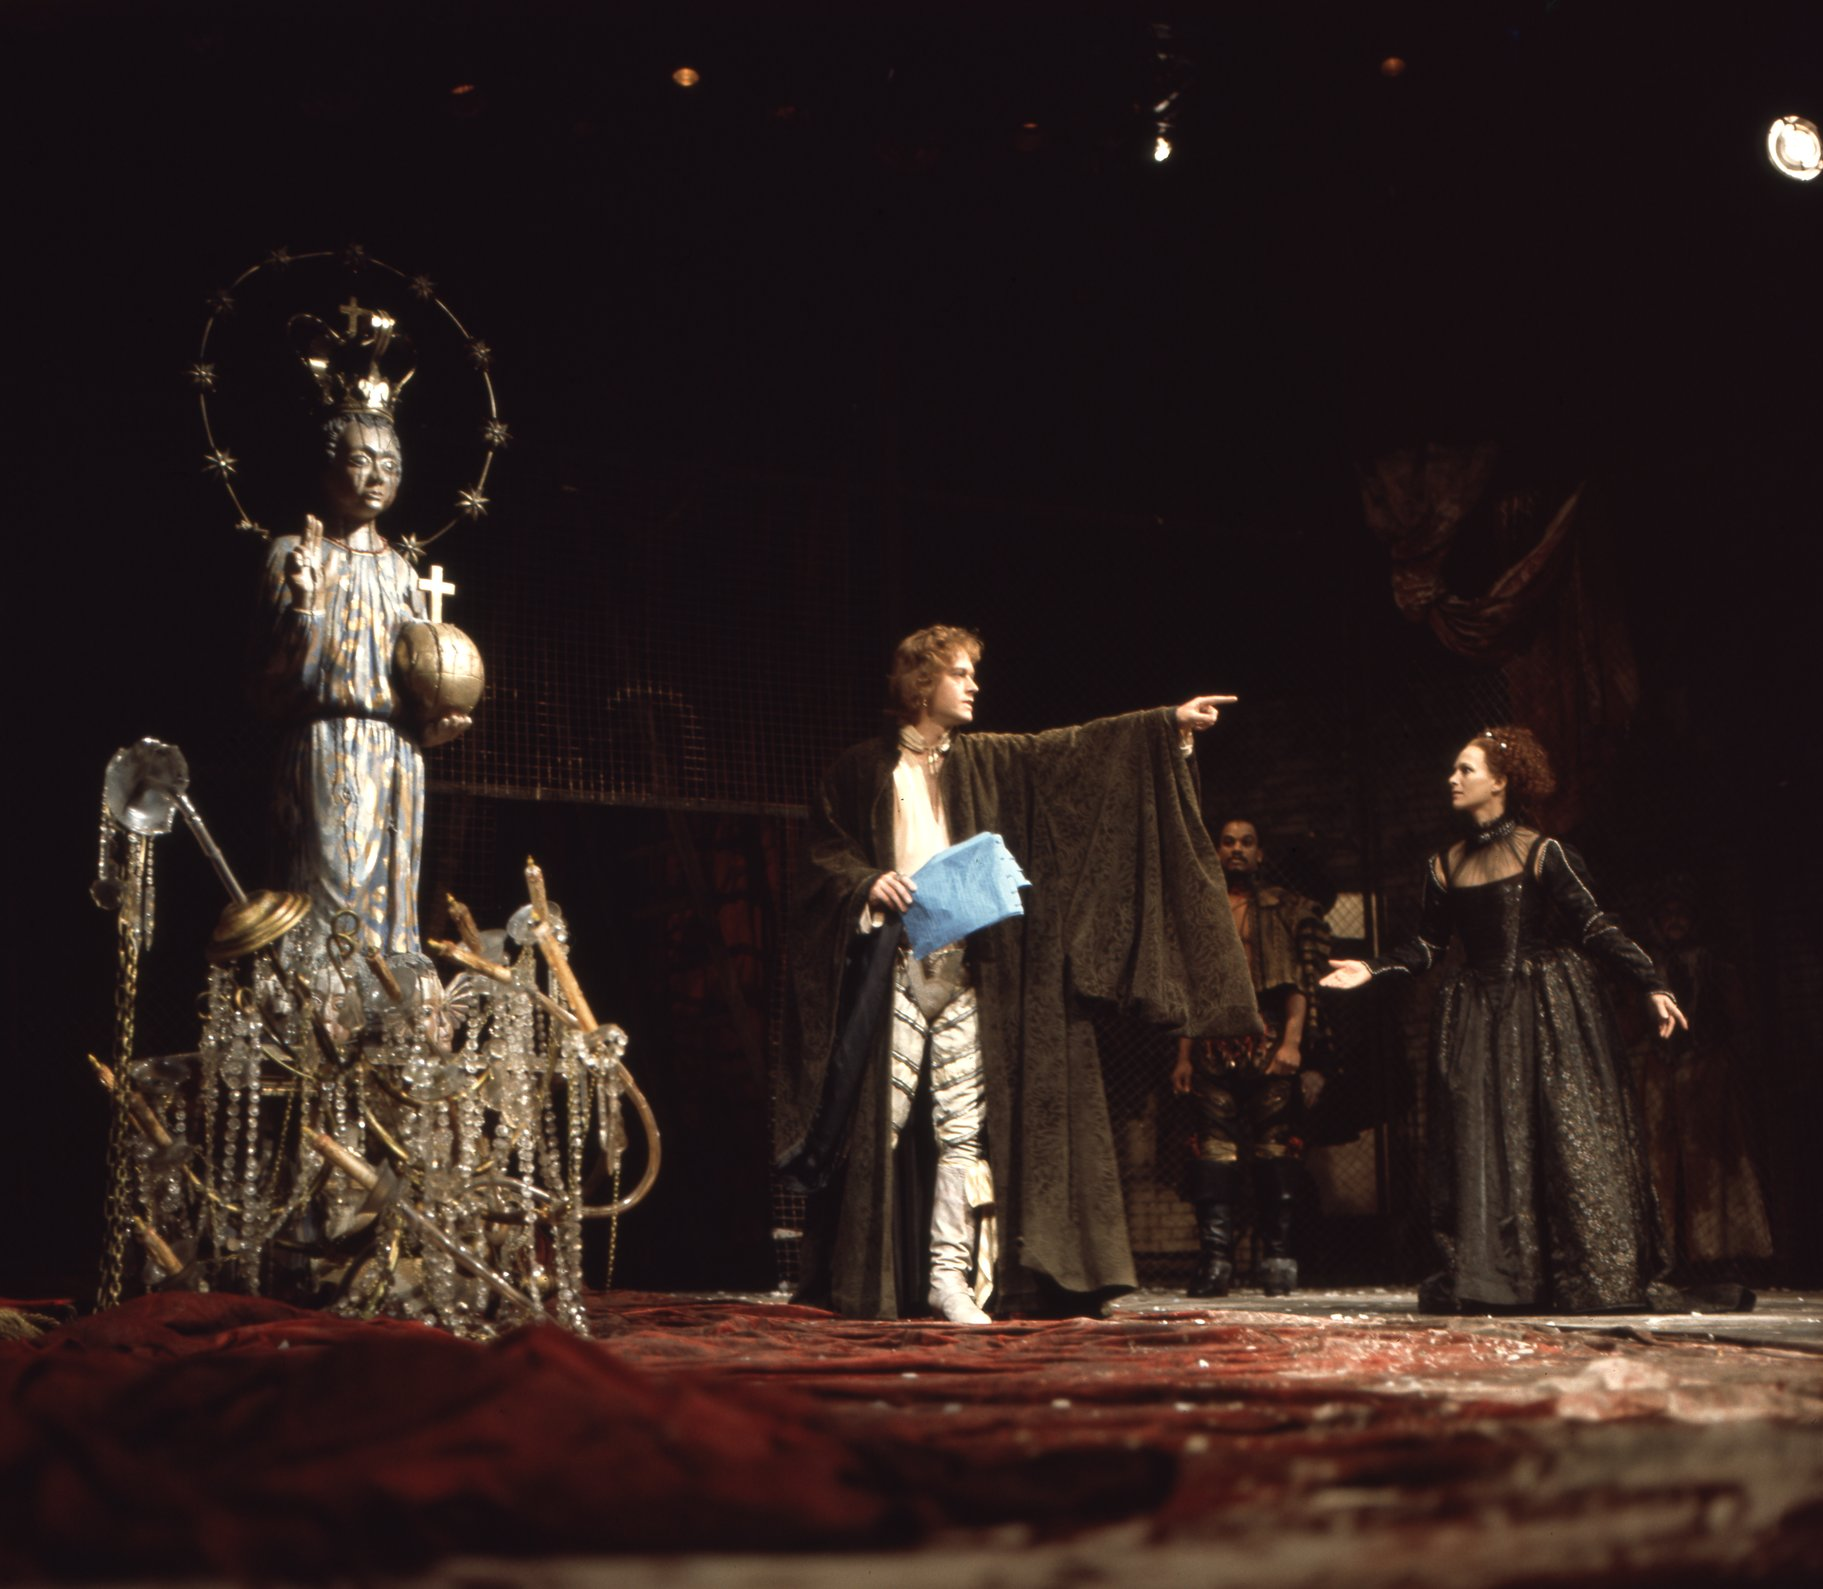 A man points away from a woman in a black gown.